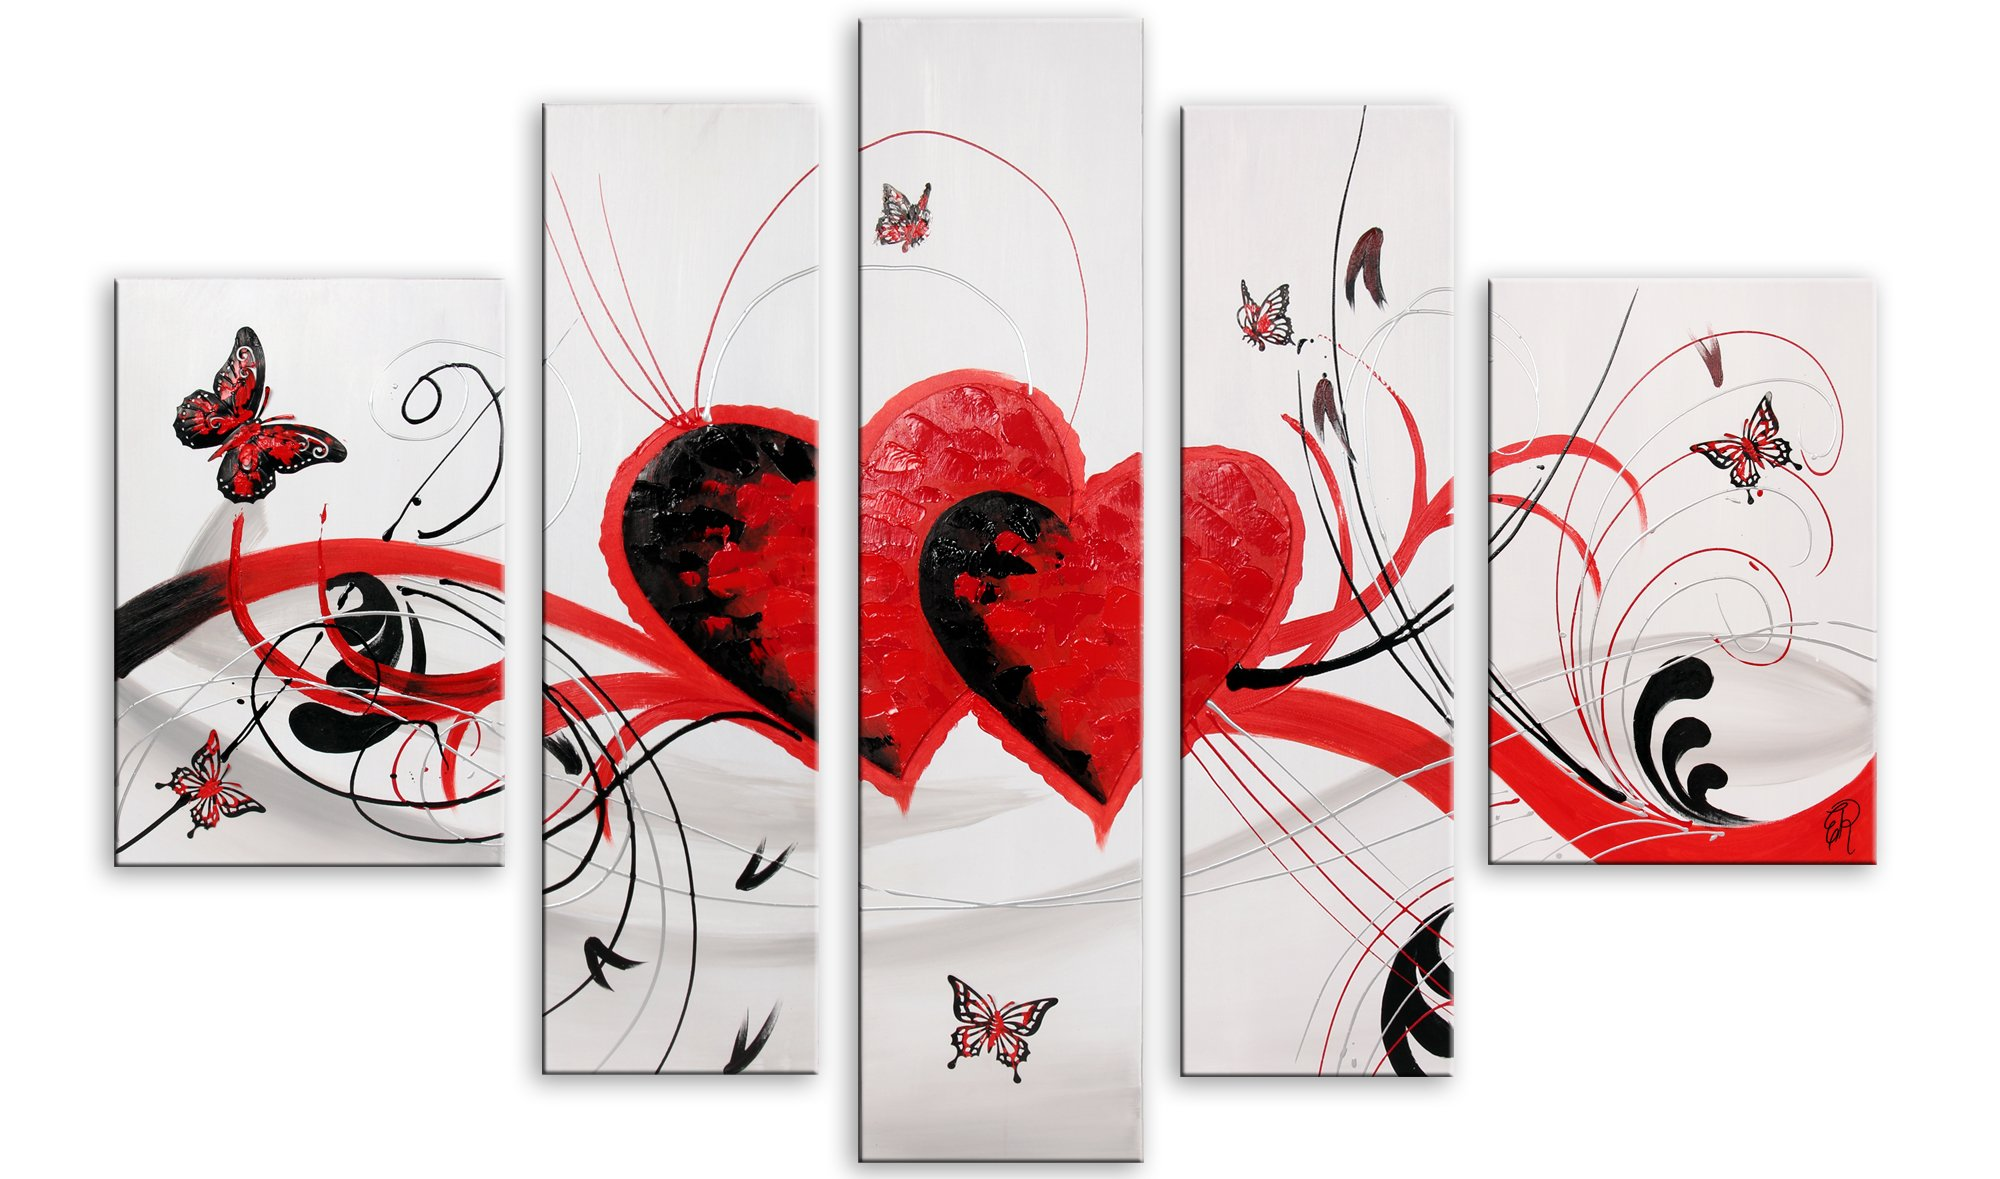 World Art TW60159 Aesthetic Wooden Frame Hearts and Butterflies, 100x155x3 cm, Size: 40 x 62 x 2 Inch